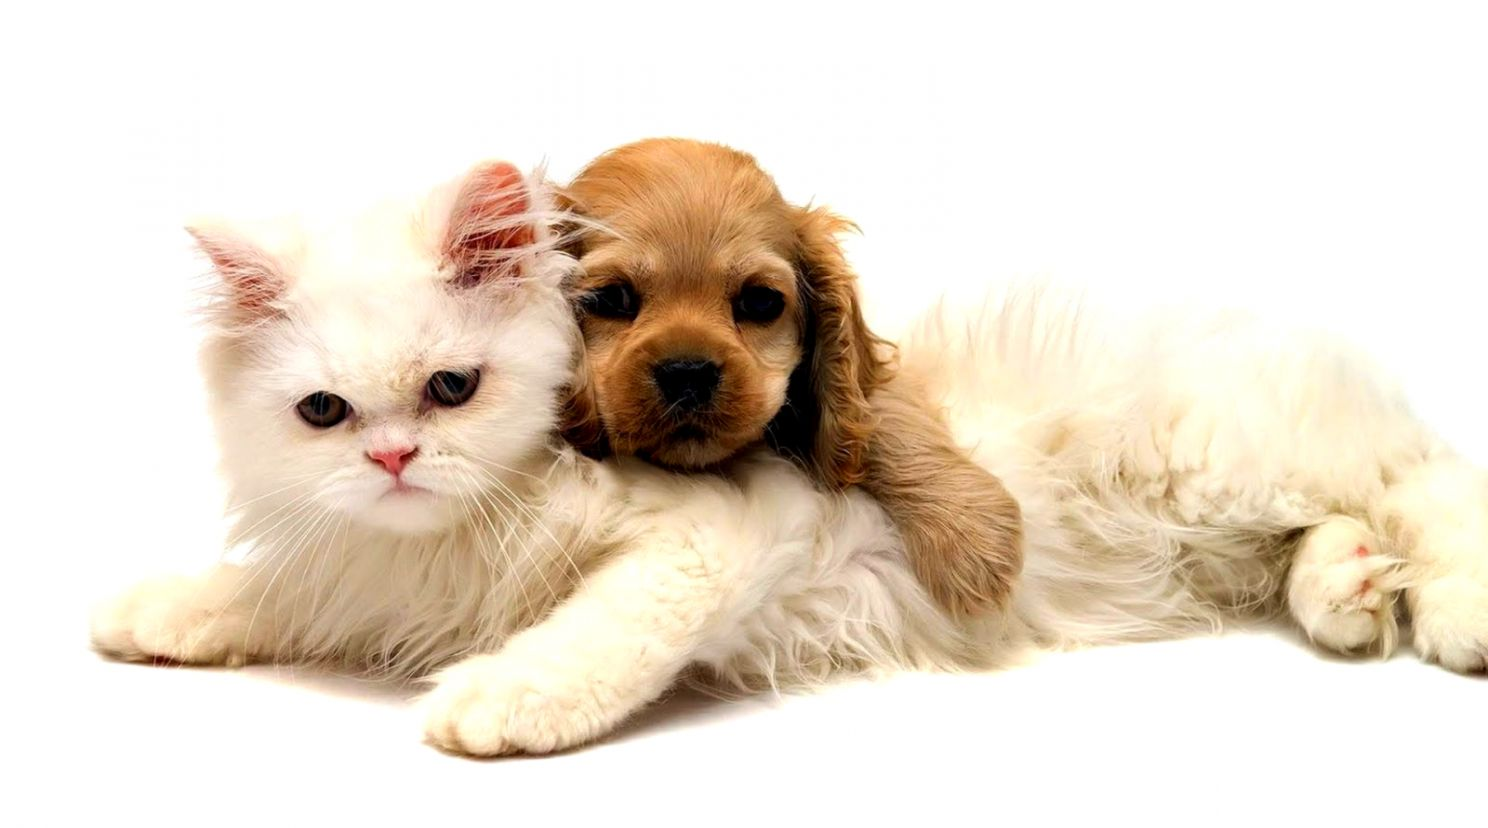 Cute Cat And Dog Wallpapers Hd Zedge Wallpapers